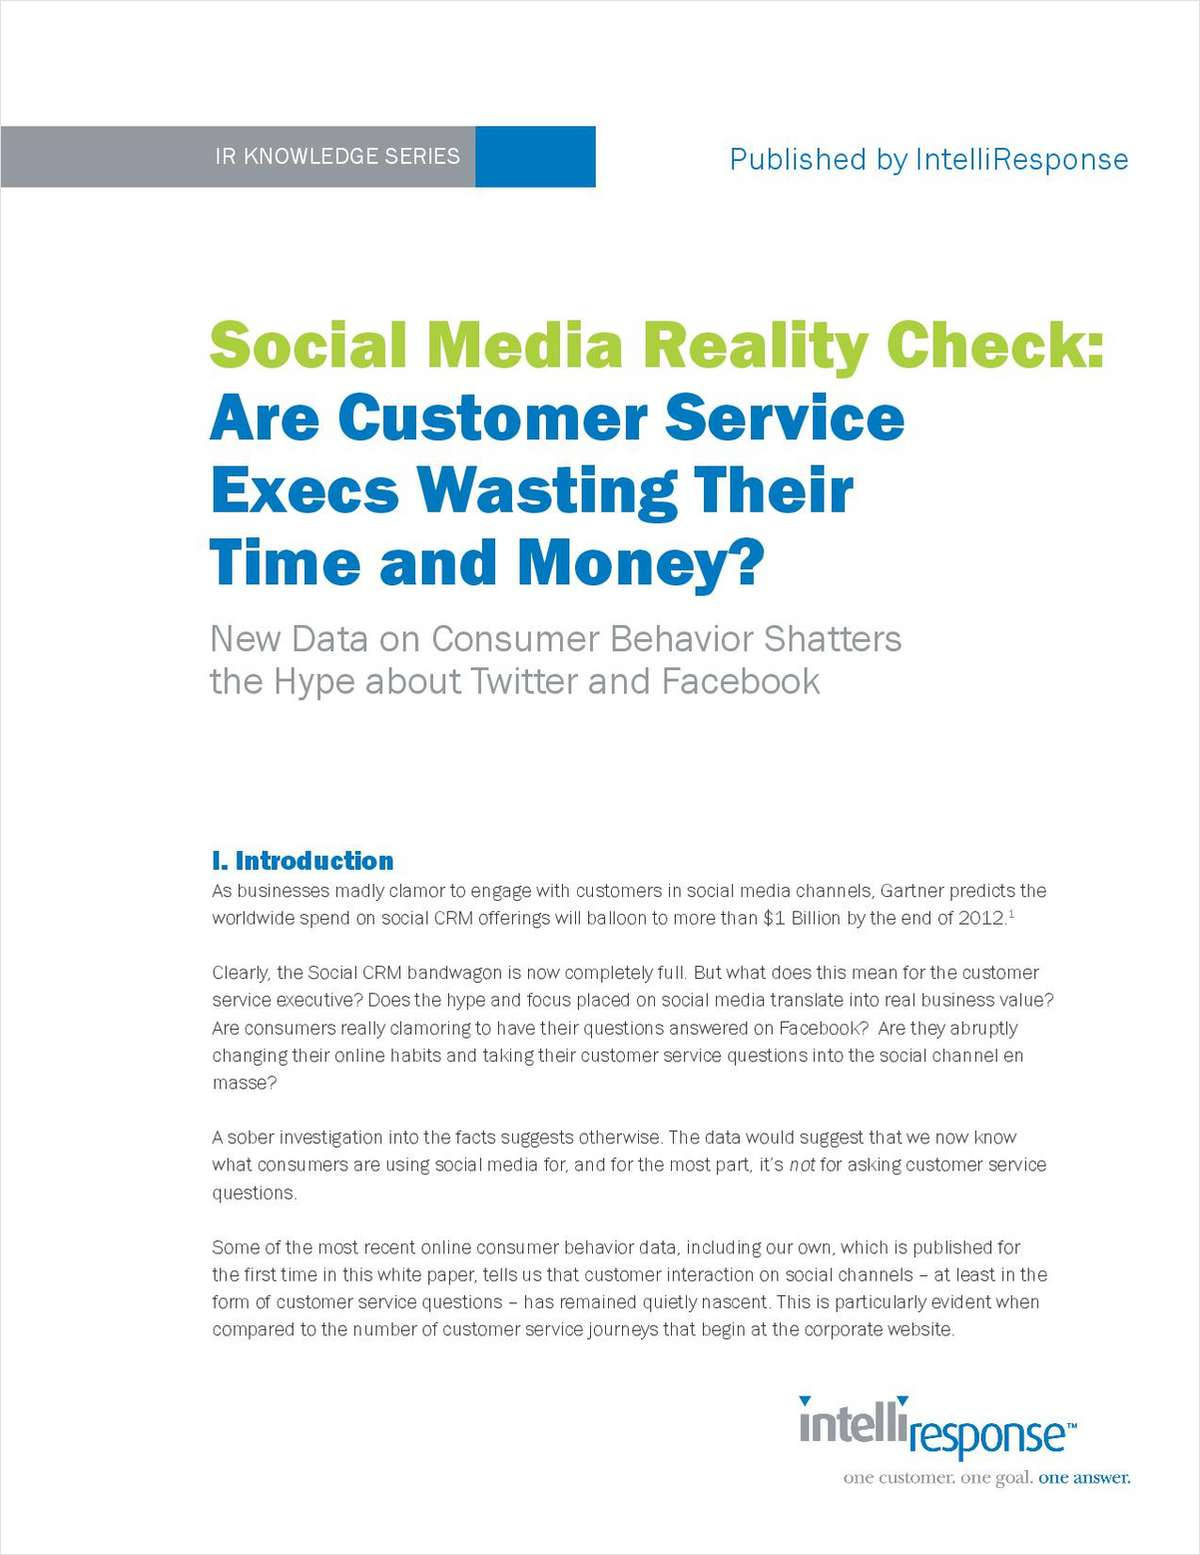 Social Media Reality Check: Are Customer Service Execs Wasting Their Time and Money?